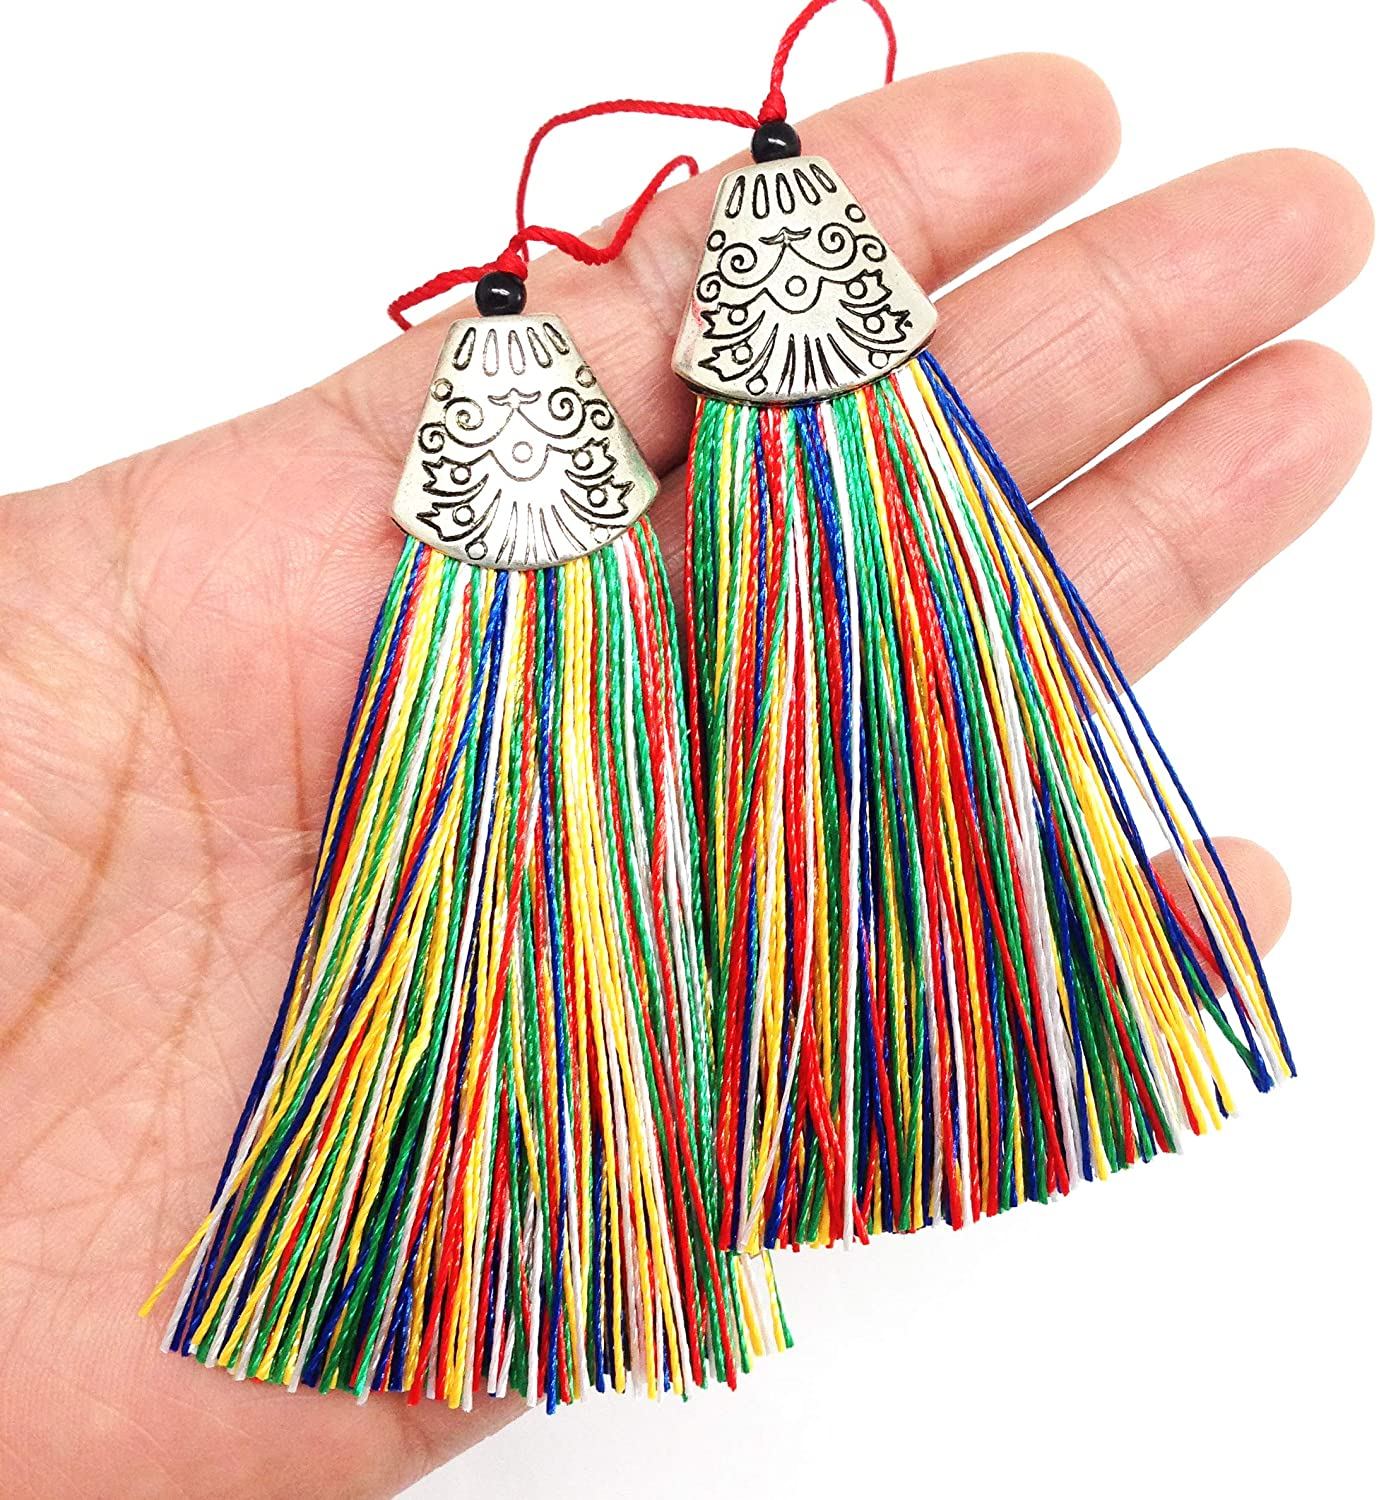 PEPPERLONELY 10PC 3 Inch Silky Handmade Soft Fiber Tassels with Antique Silver Cap, Colorful